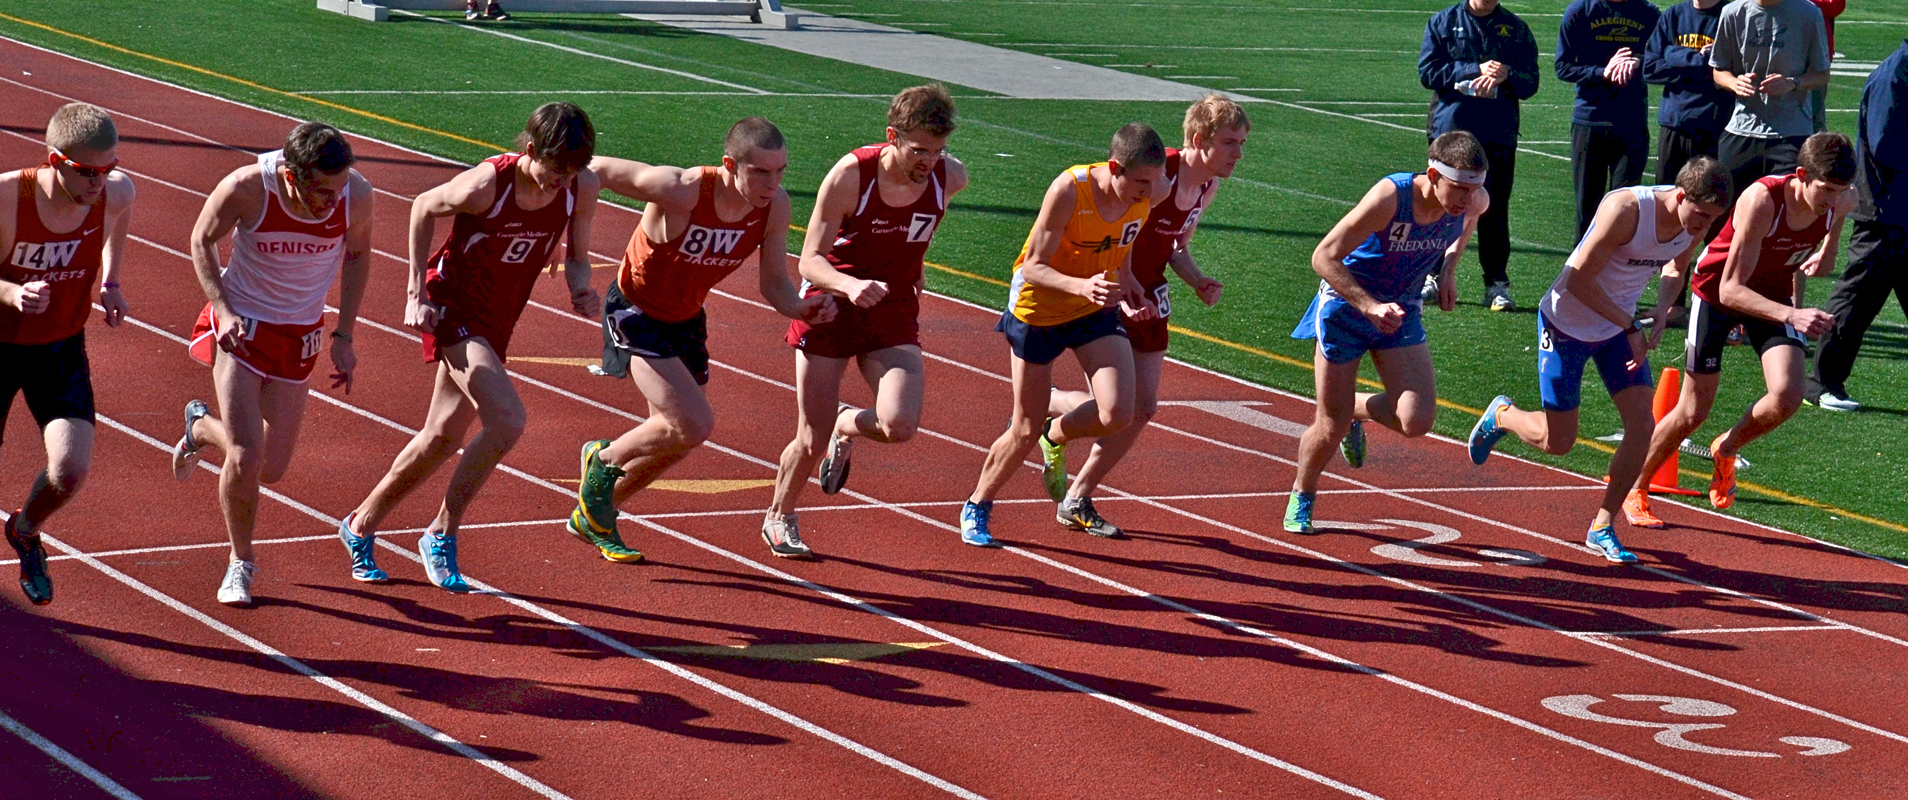 Carnegie Mellon's track and field teams hosted a mini-invitational on campus last Saturday. The men's team came in first place overall, and the women's team came in second place. (credit: Kate Groschner/Photo Editor)